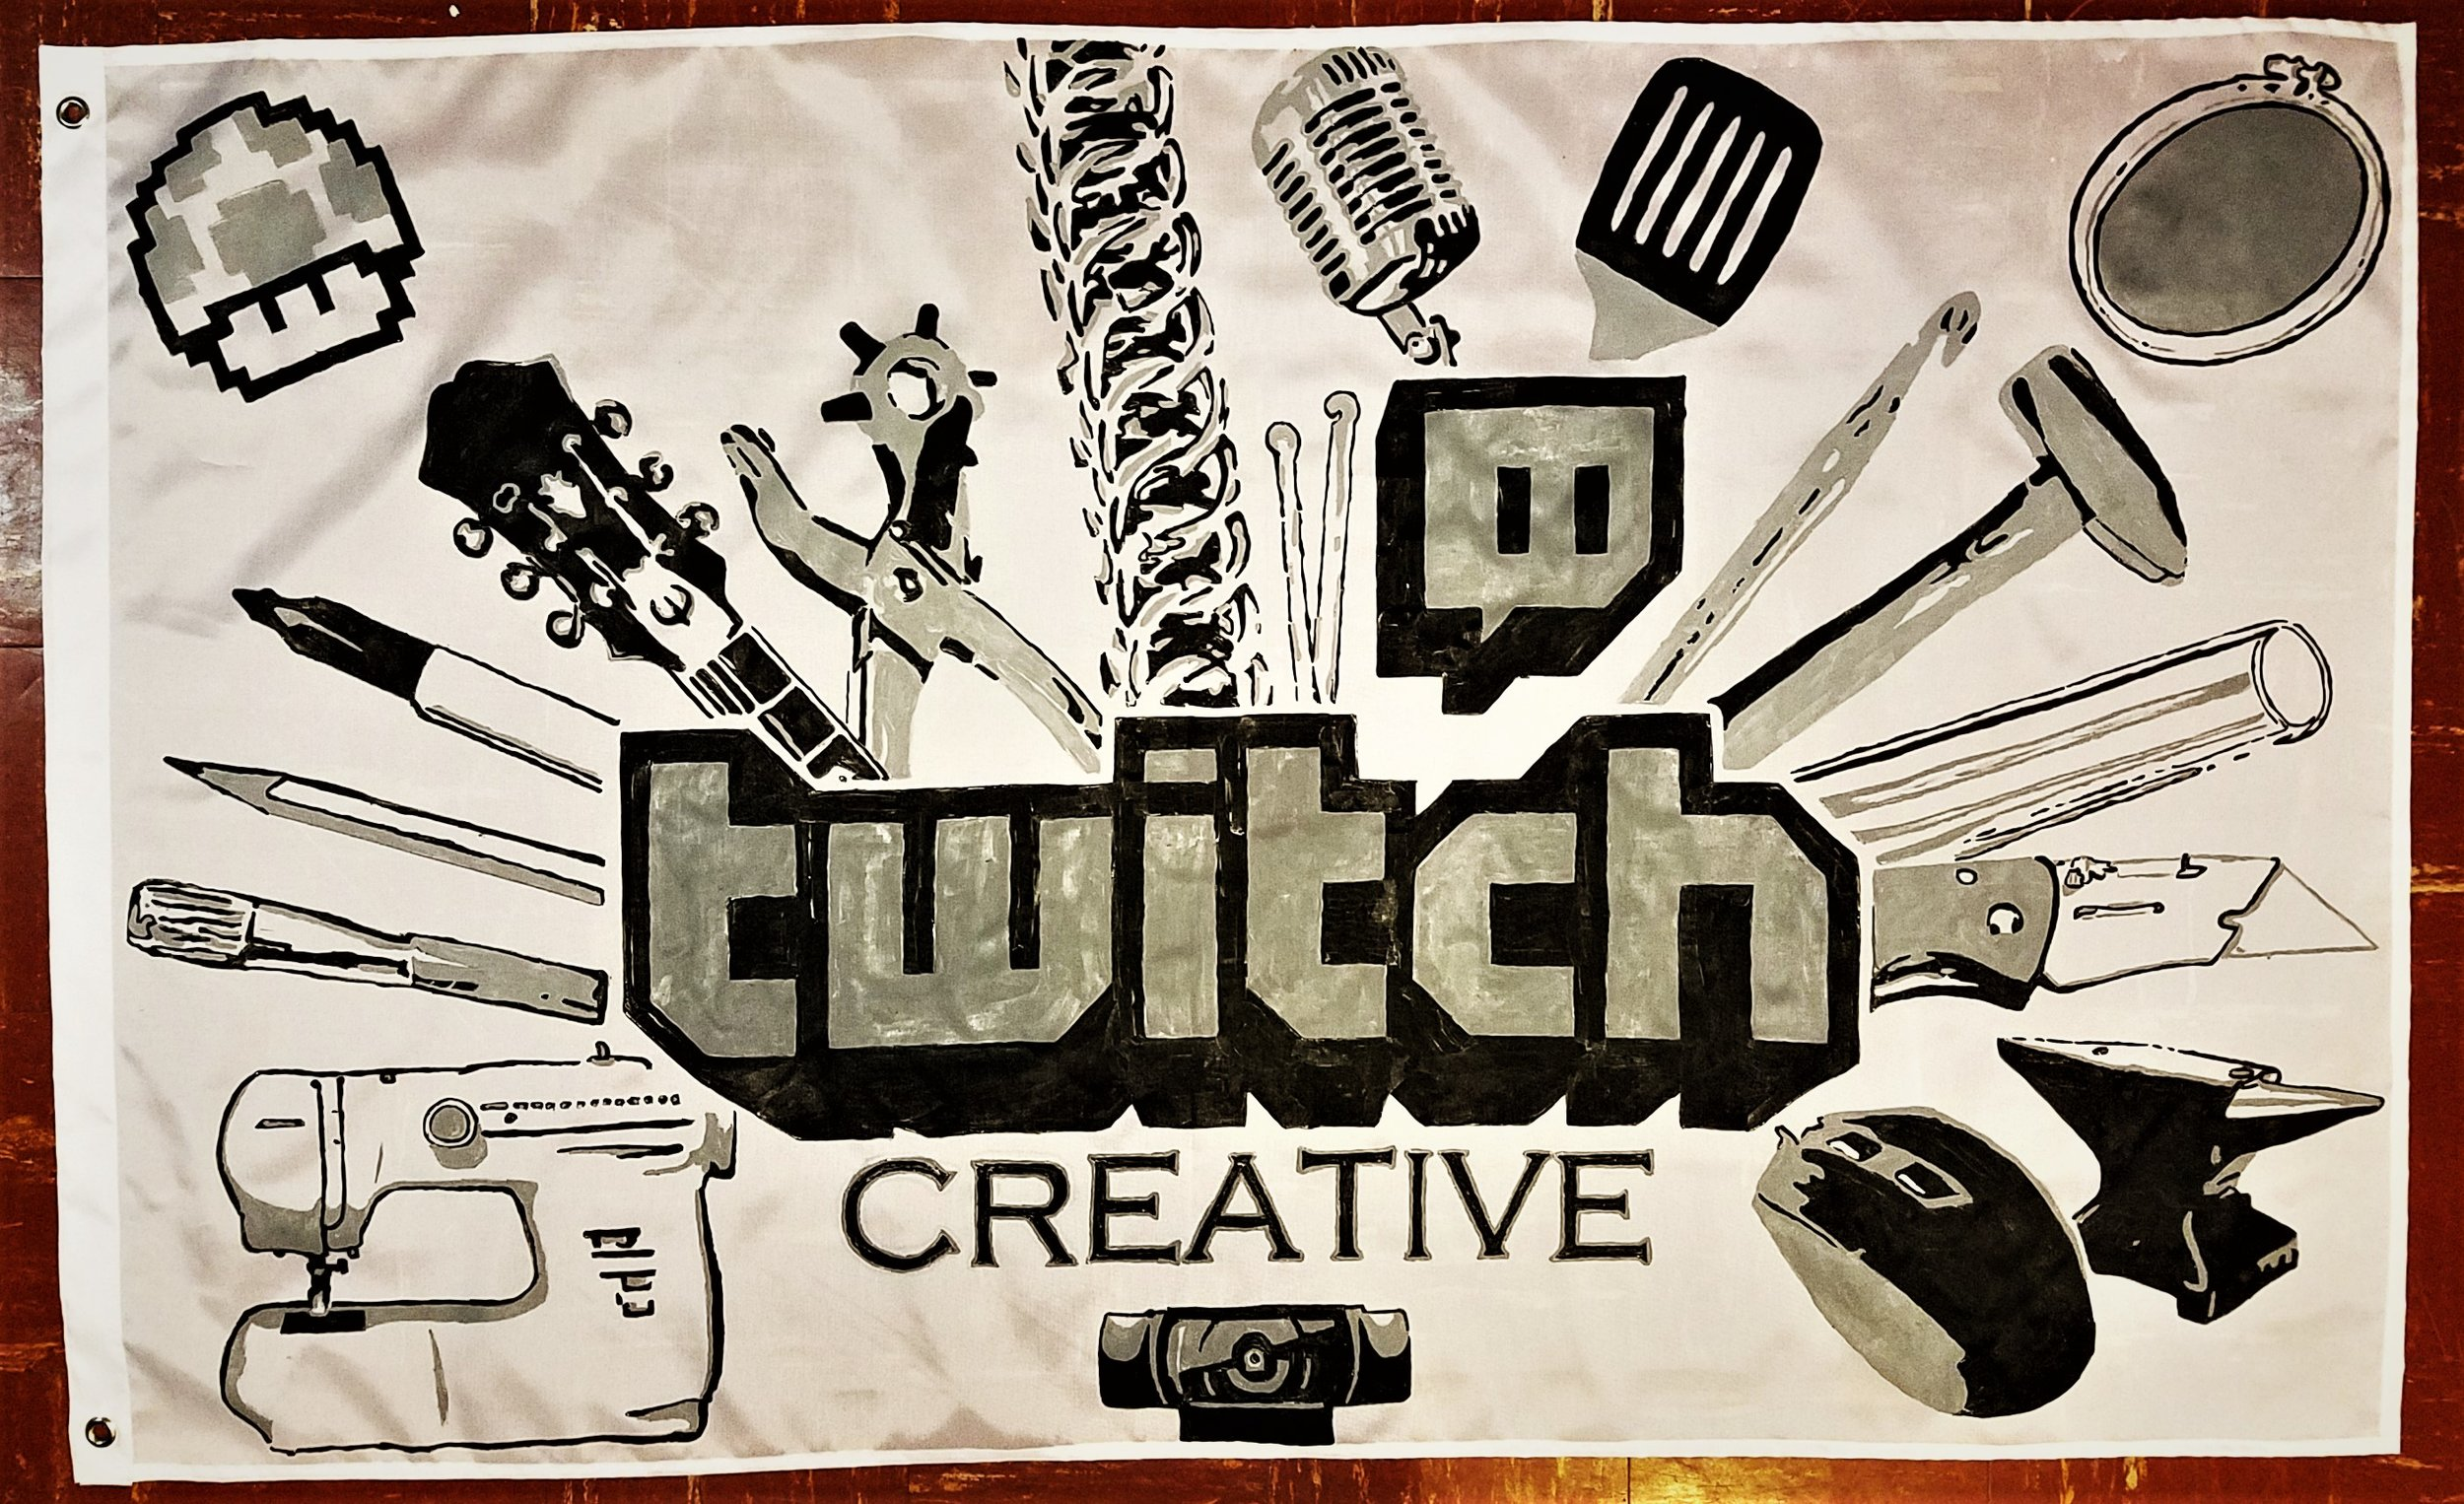 Tock Custom - Twitch Creative Flag